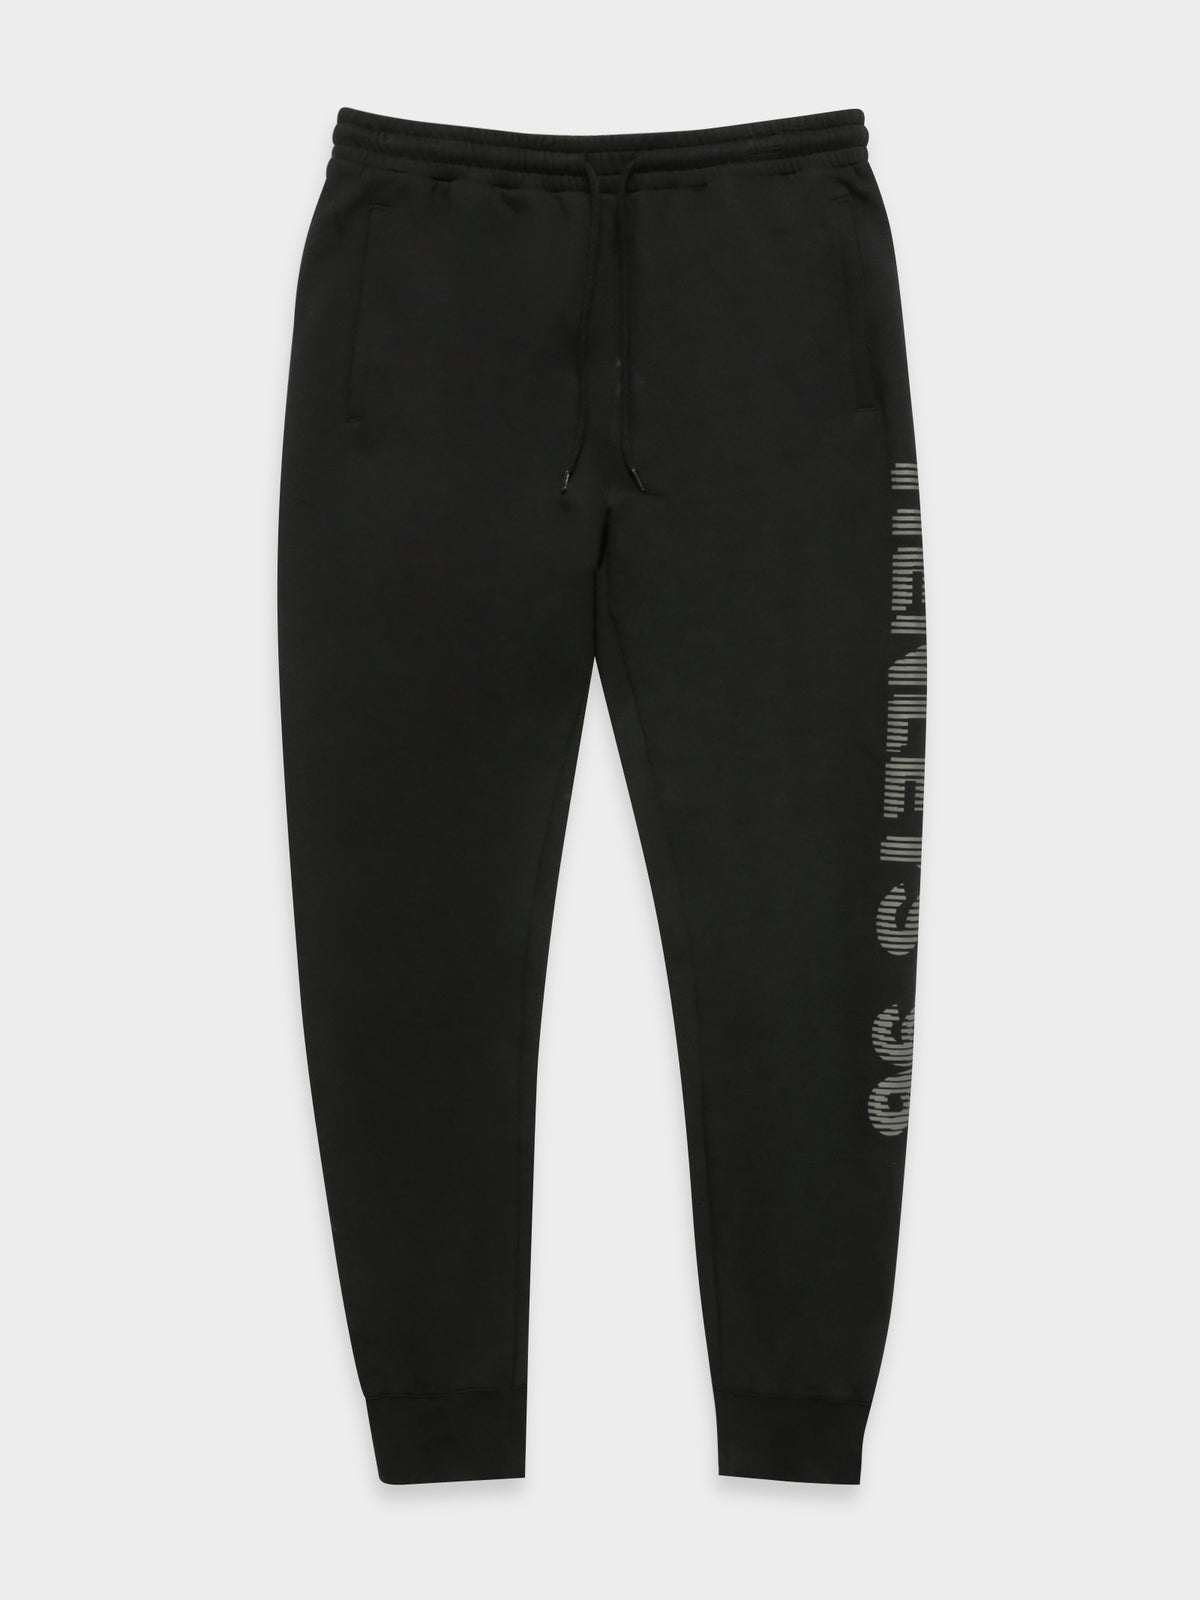 Riviera Track Pants in Black